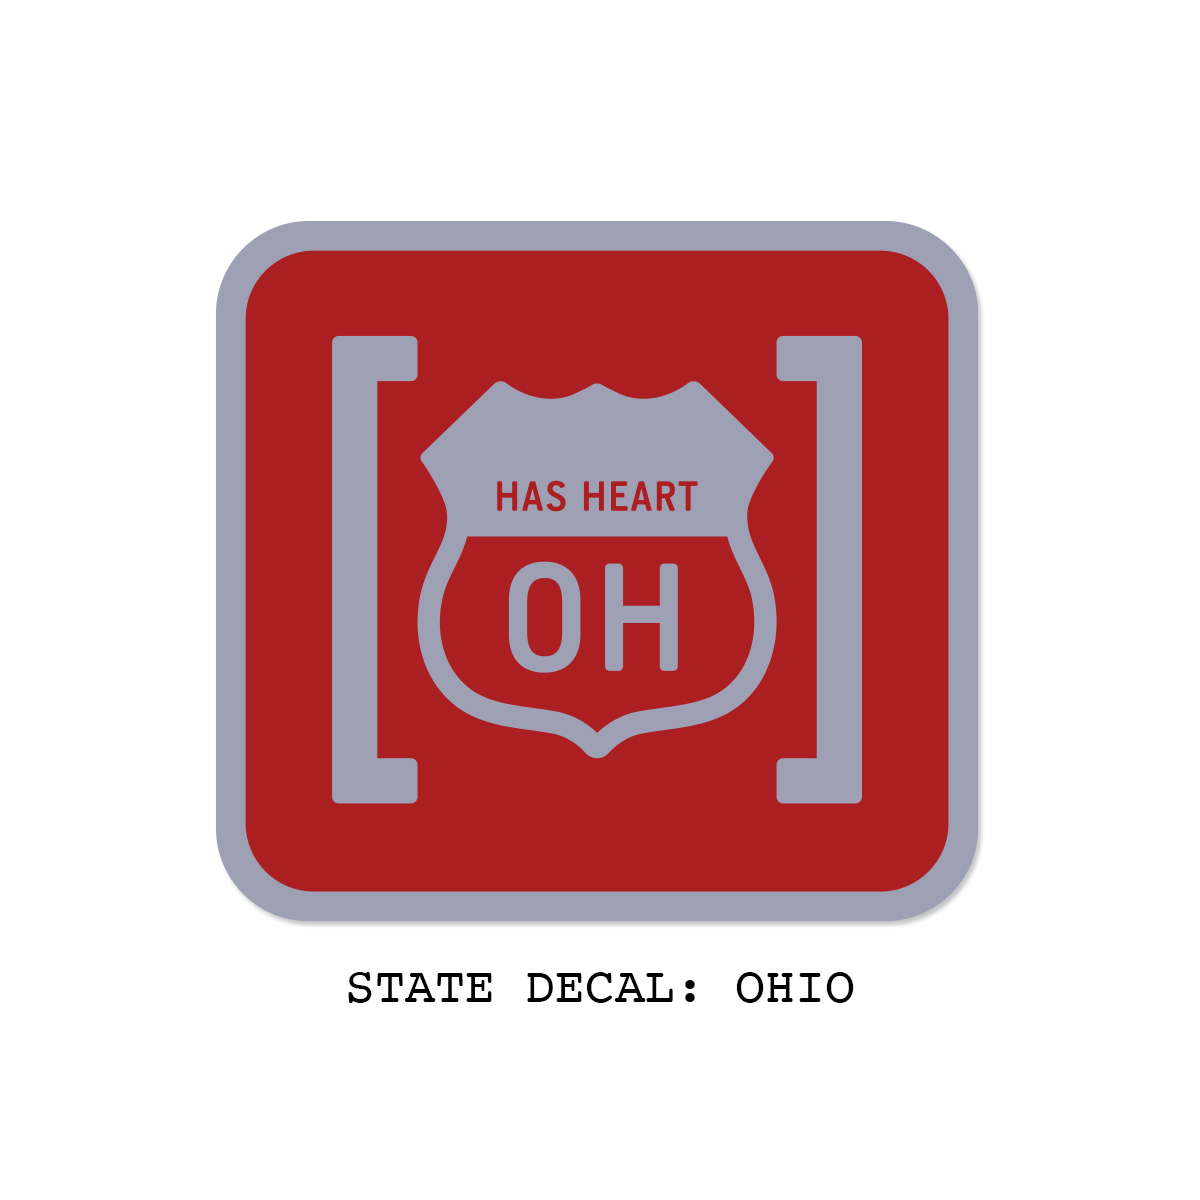 hasheart-statedecal-OH